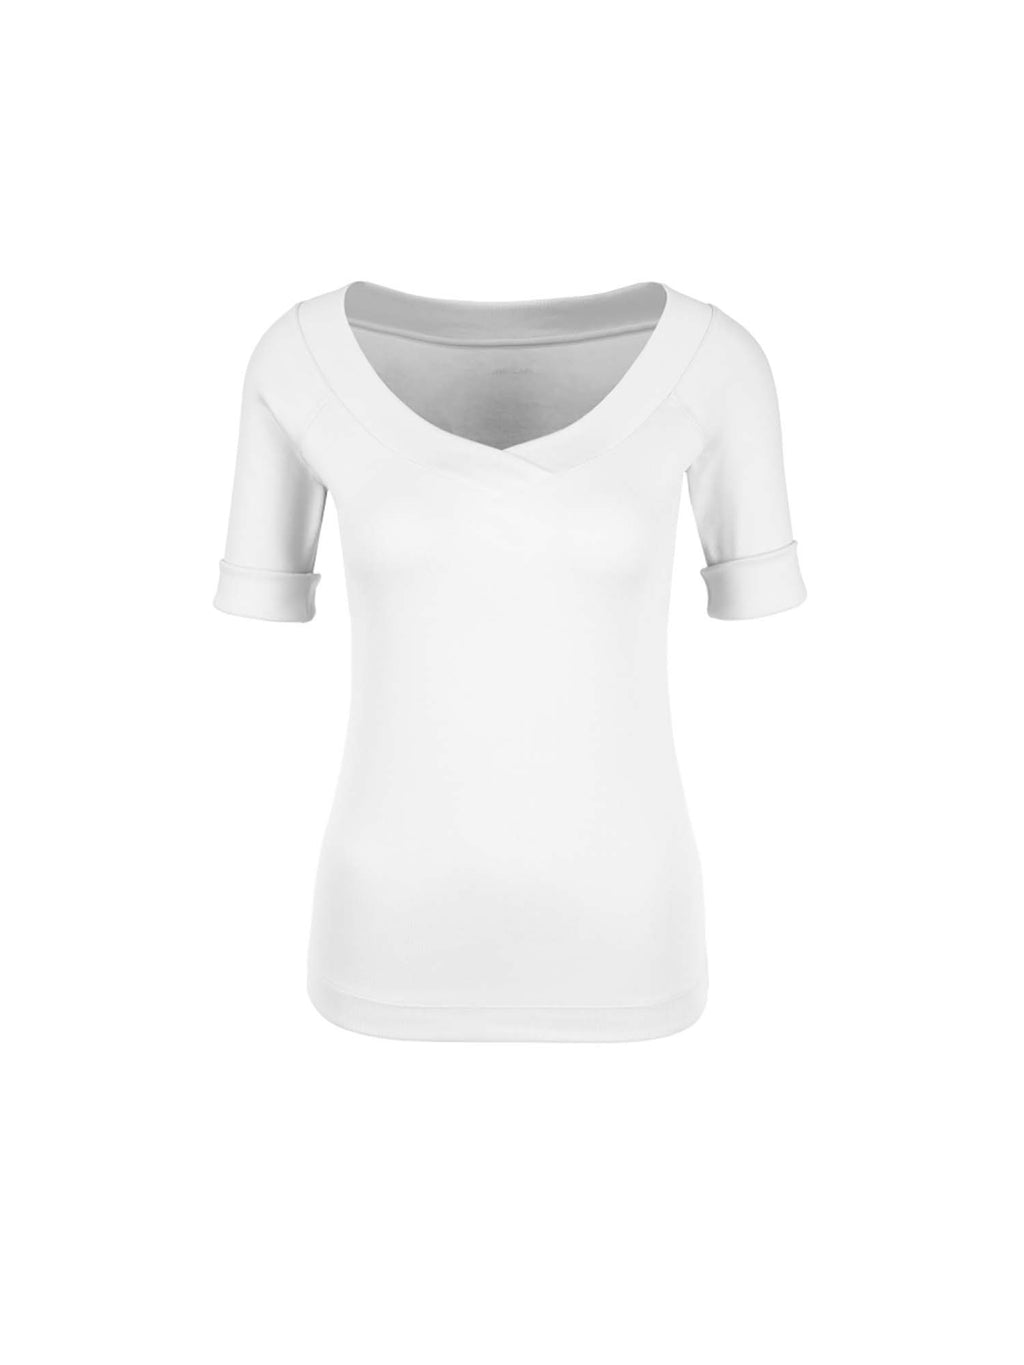 Marc Cain Essential Stretchy Top with V-Neck